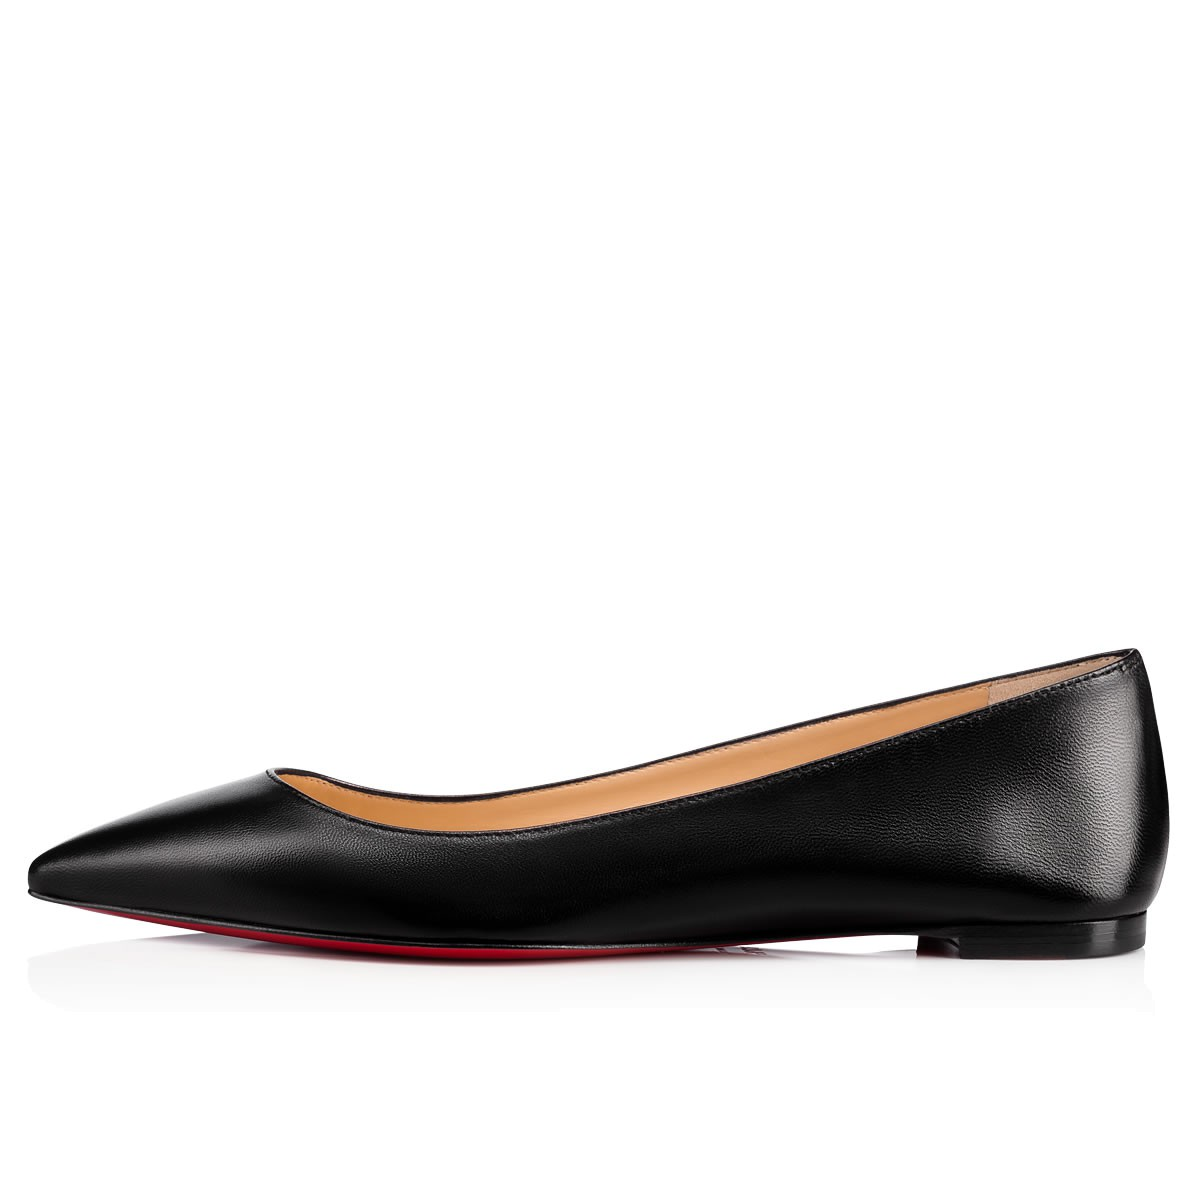 Shoes - Ballalla - Christian Louboutin